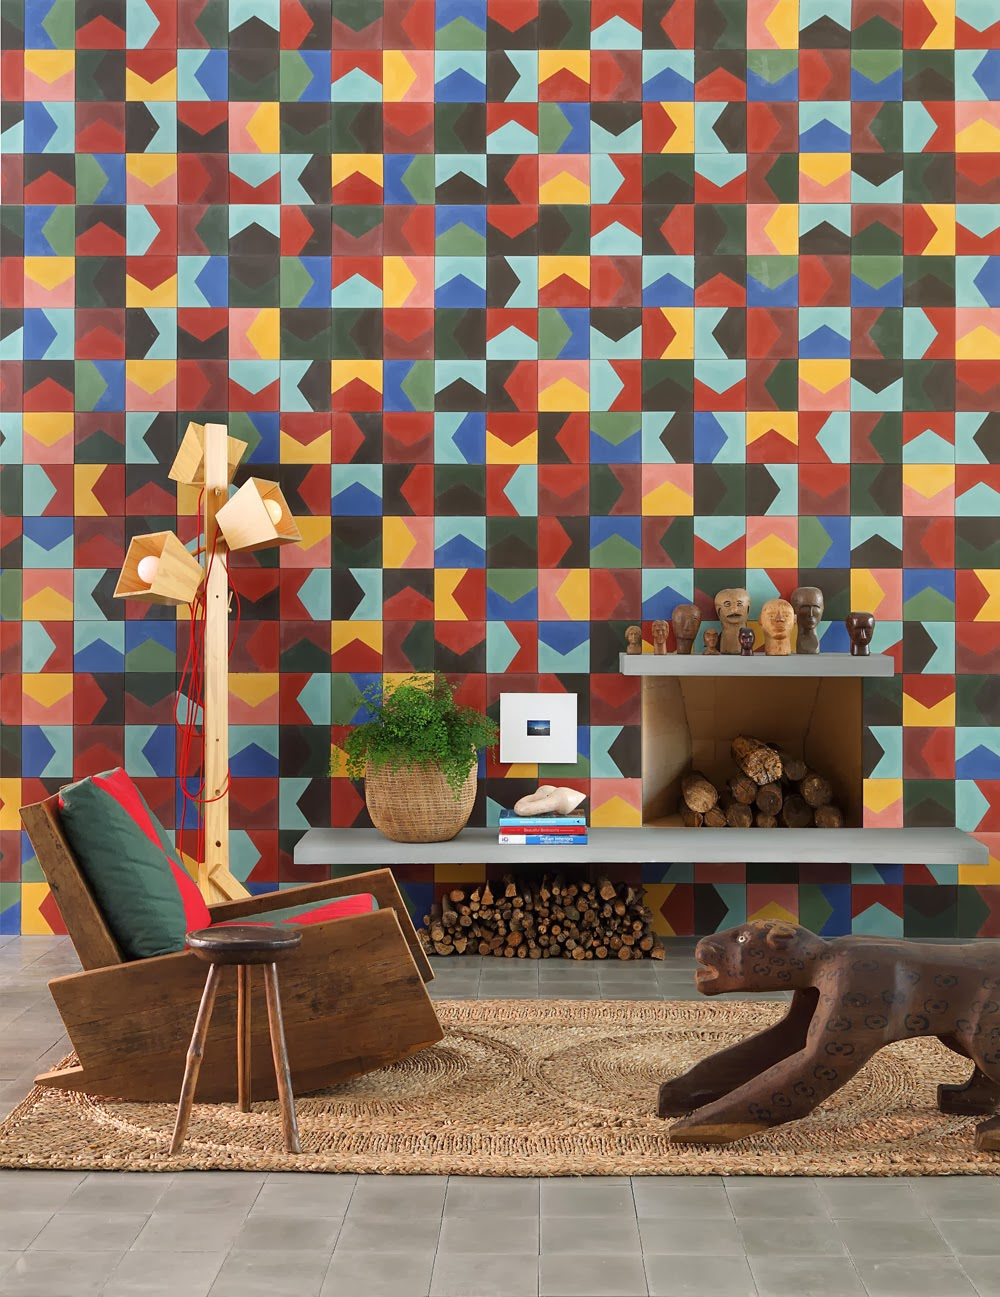 Patchwork Tiles - Mix And Match Your Favorite Colors For A ...